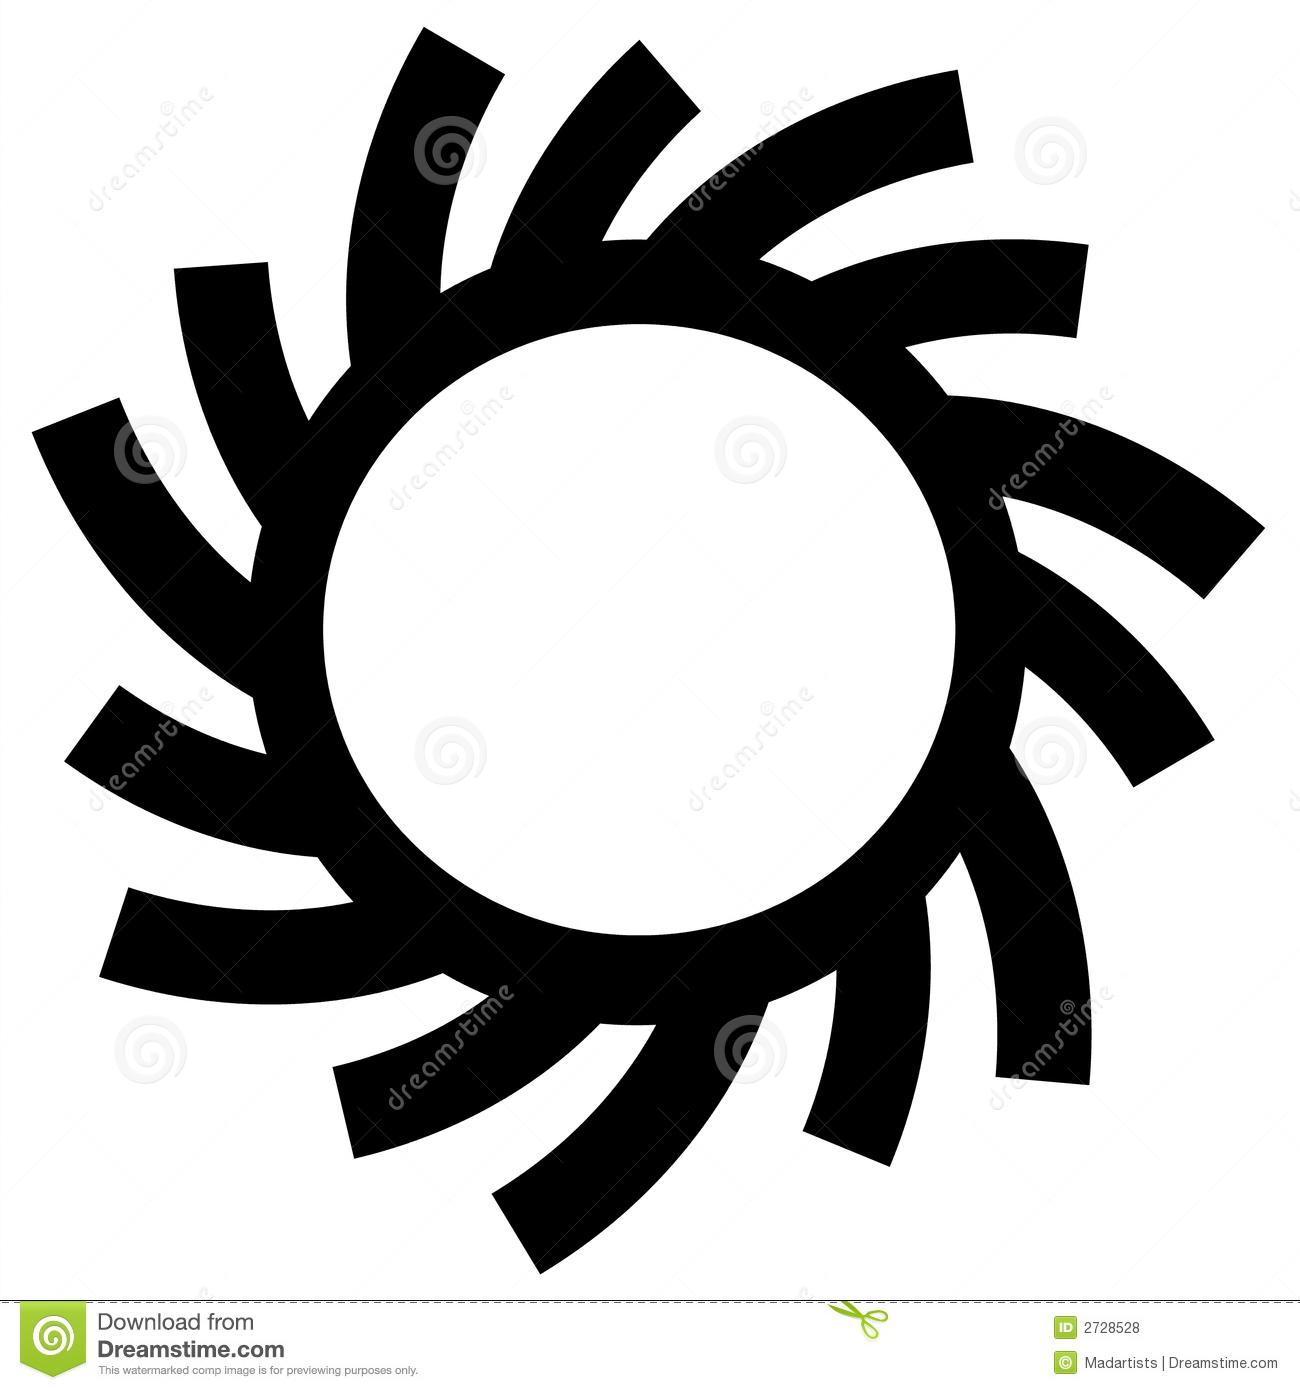 Sun Circle Or Ring Symbols Stock Illustration. Question Signs Of Stroke. Pelican Signs. South Park Signs Of Stroke. Strokeawarenessmonth Signs Of Stroke. 13 Week Signs. Relationships Signs. Roundabout Signs. Diff Signs